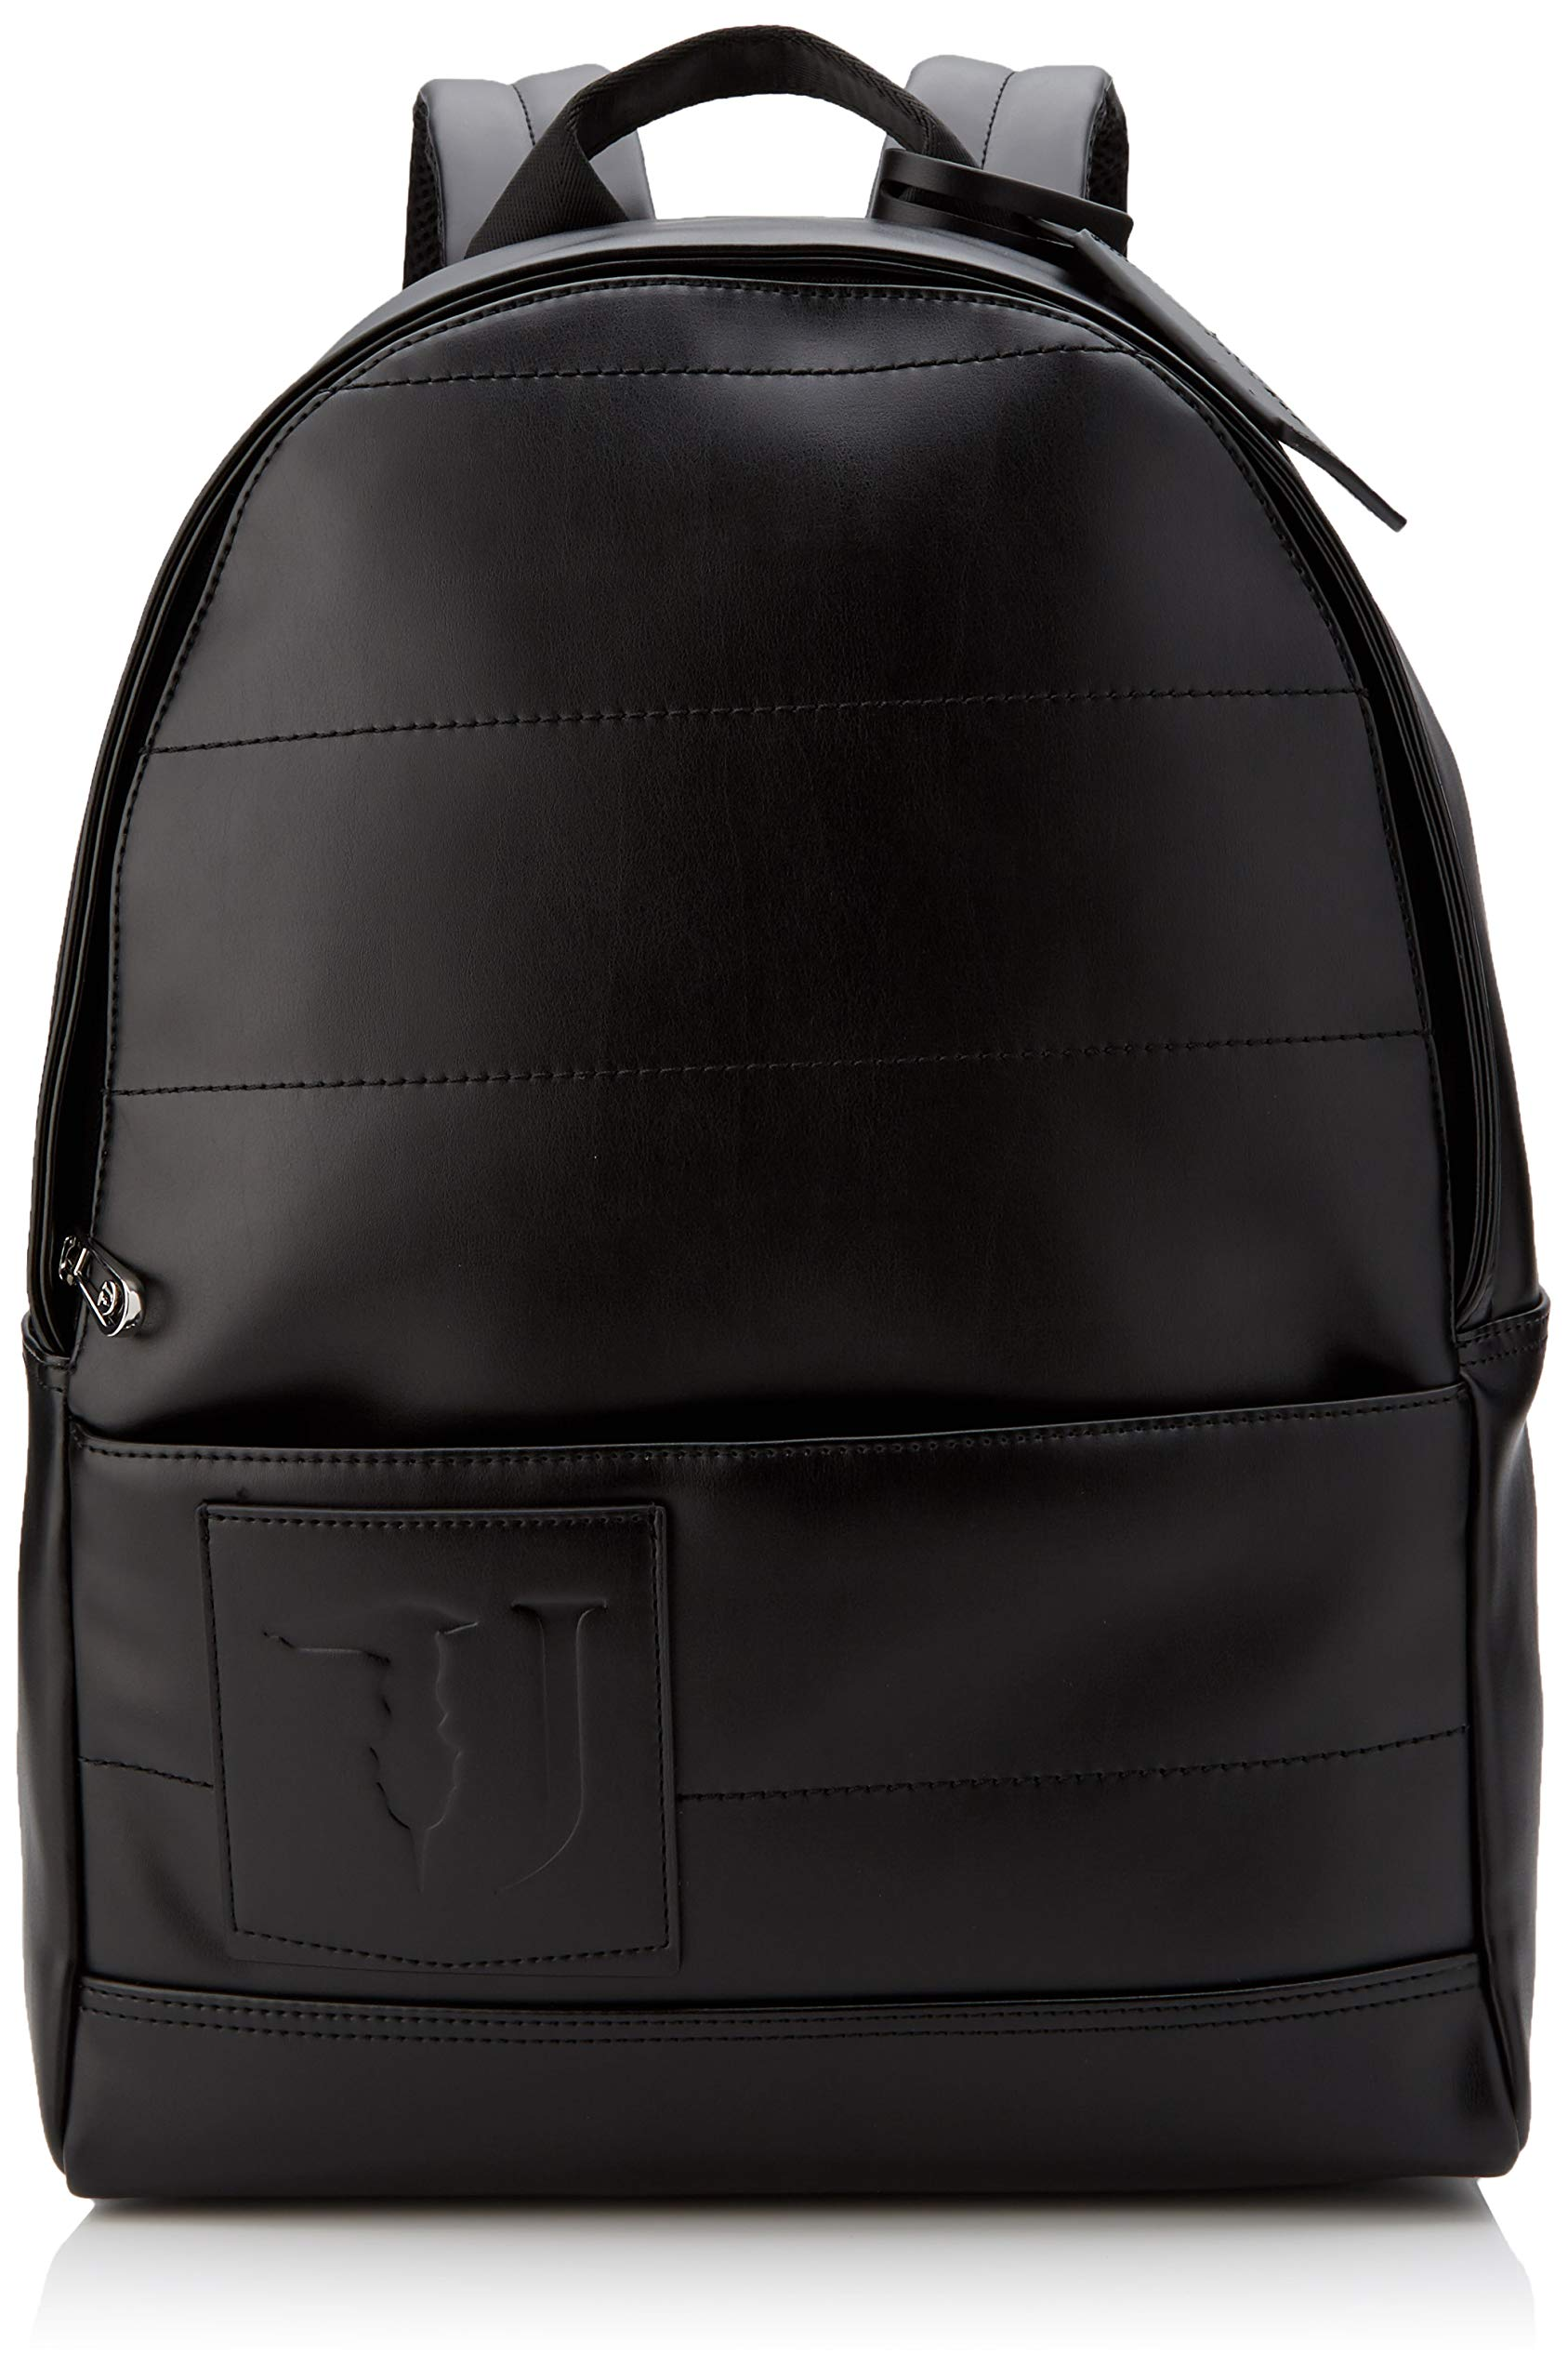 Trussardi Jeans Tici Backpack Md Ecoleather 男士背包,黑色,32x43x14 厘米 (宽 x 高 x 长)